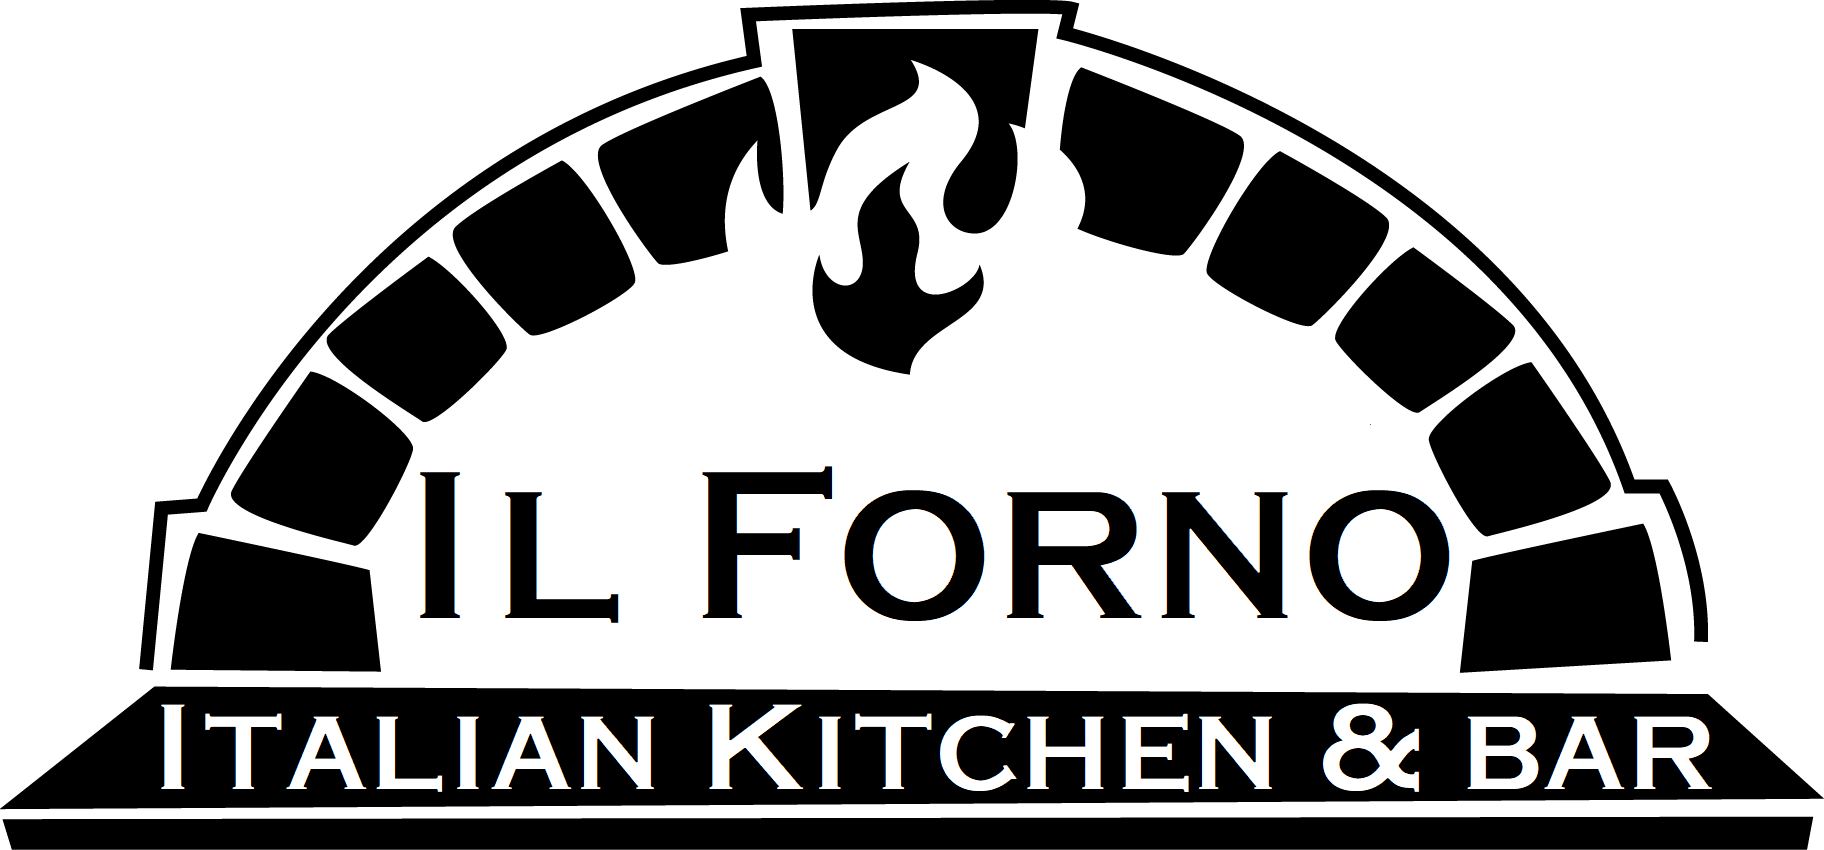 IL Forno Italian Kitchen & Bar